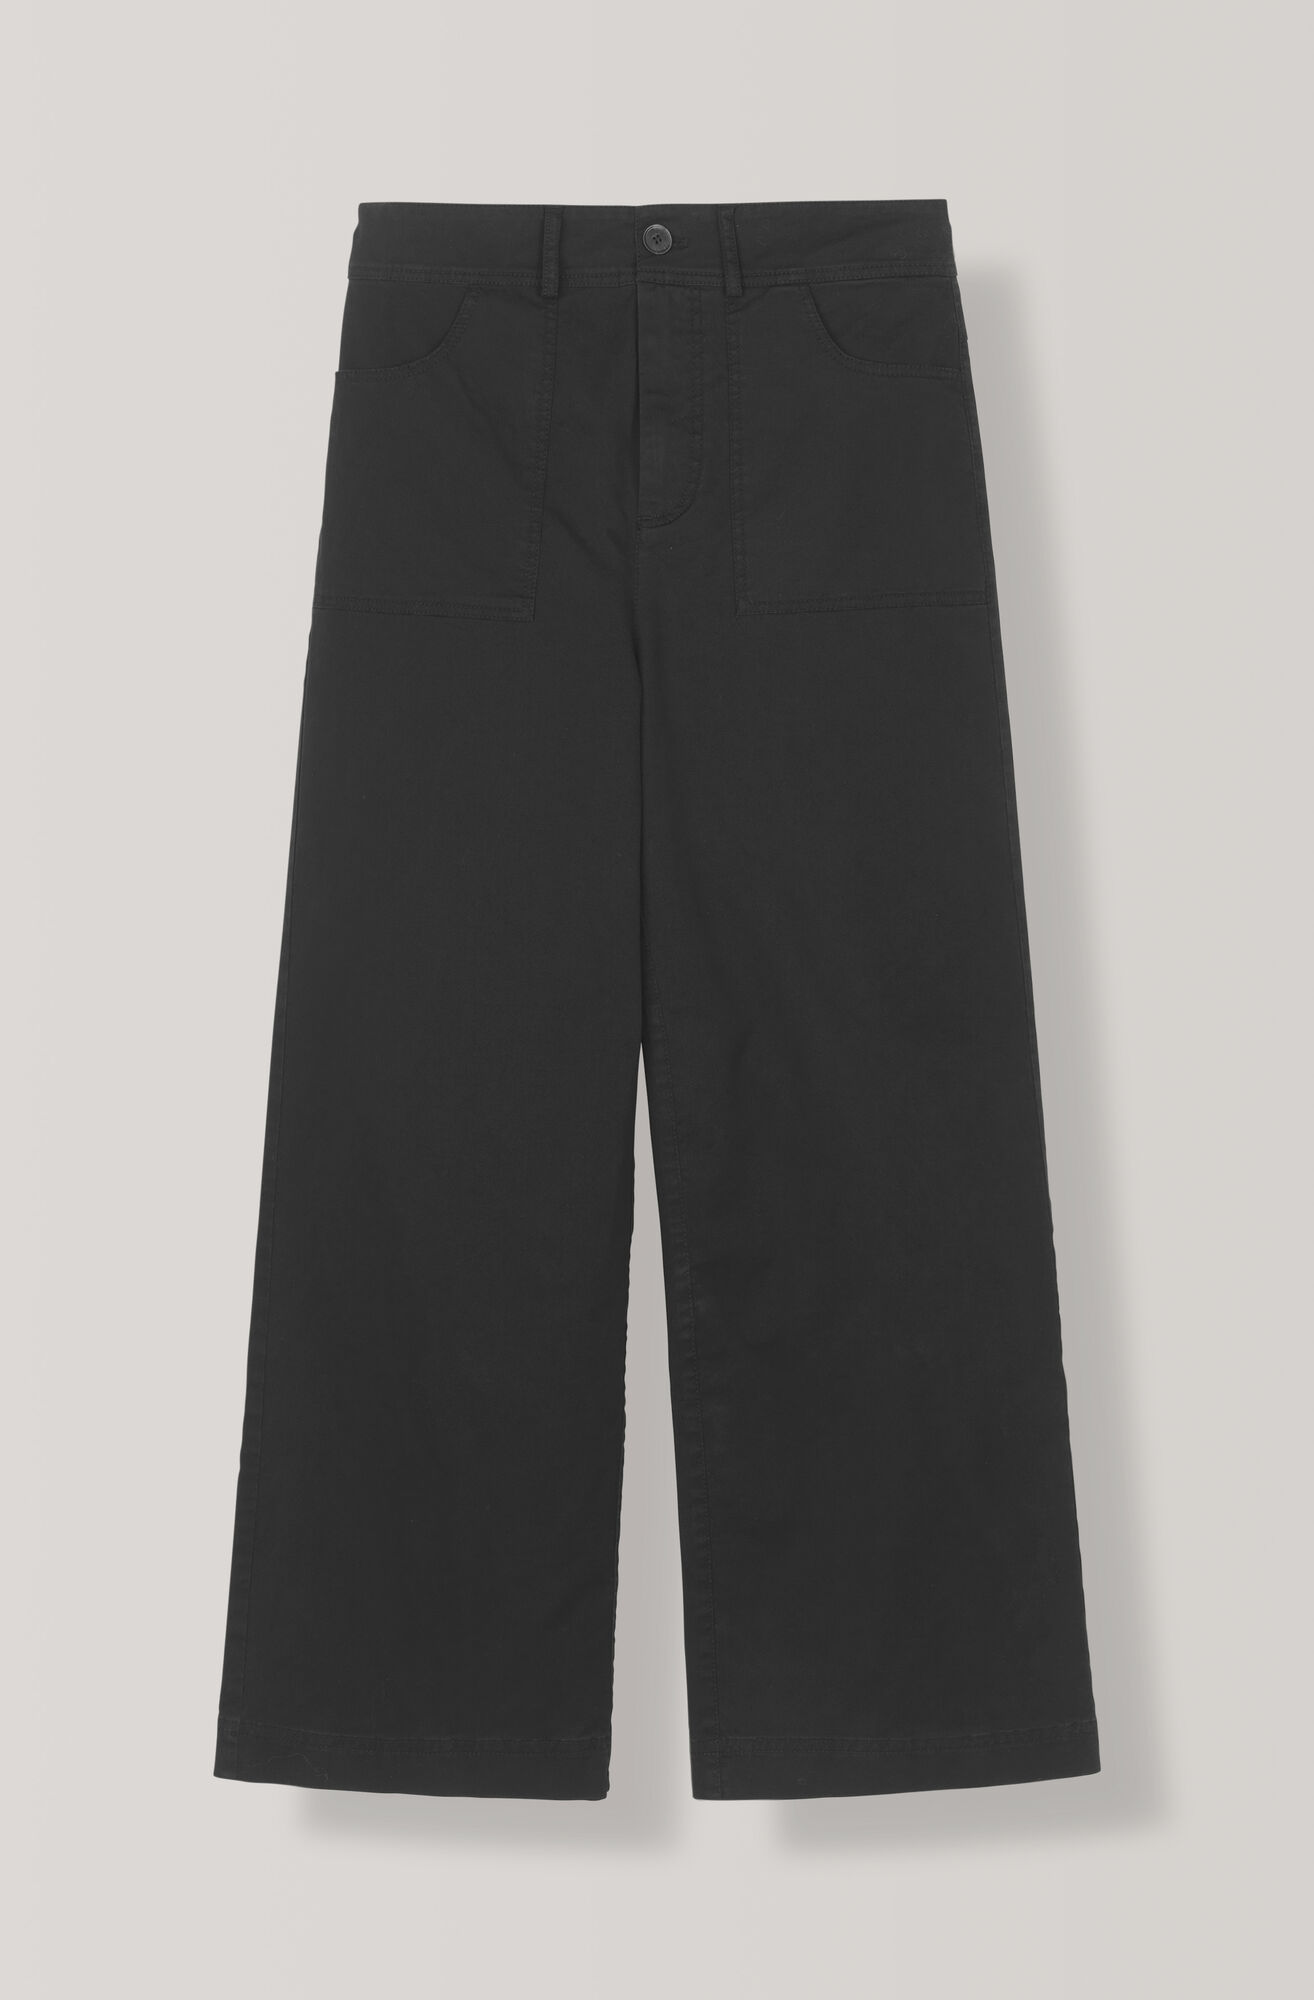 Stretch Chino Pants, Black, hi-res